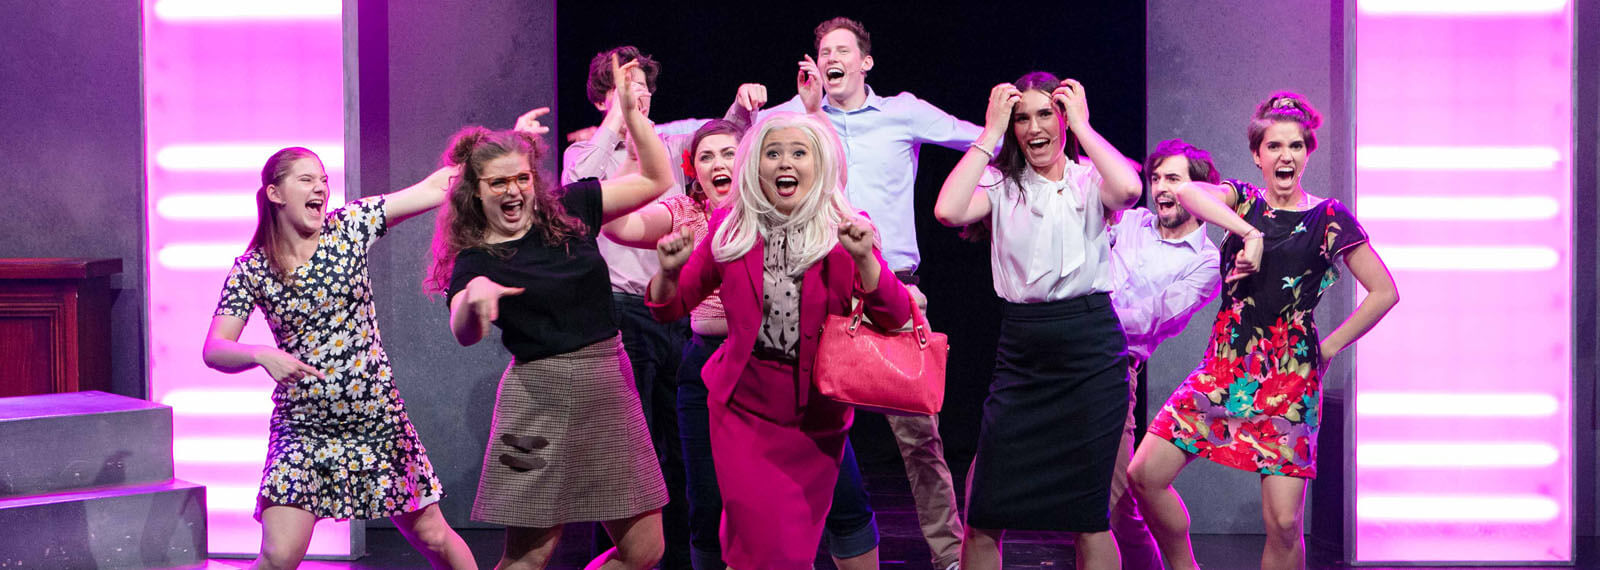 MA Musical Theatre: Choreography Image